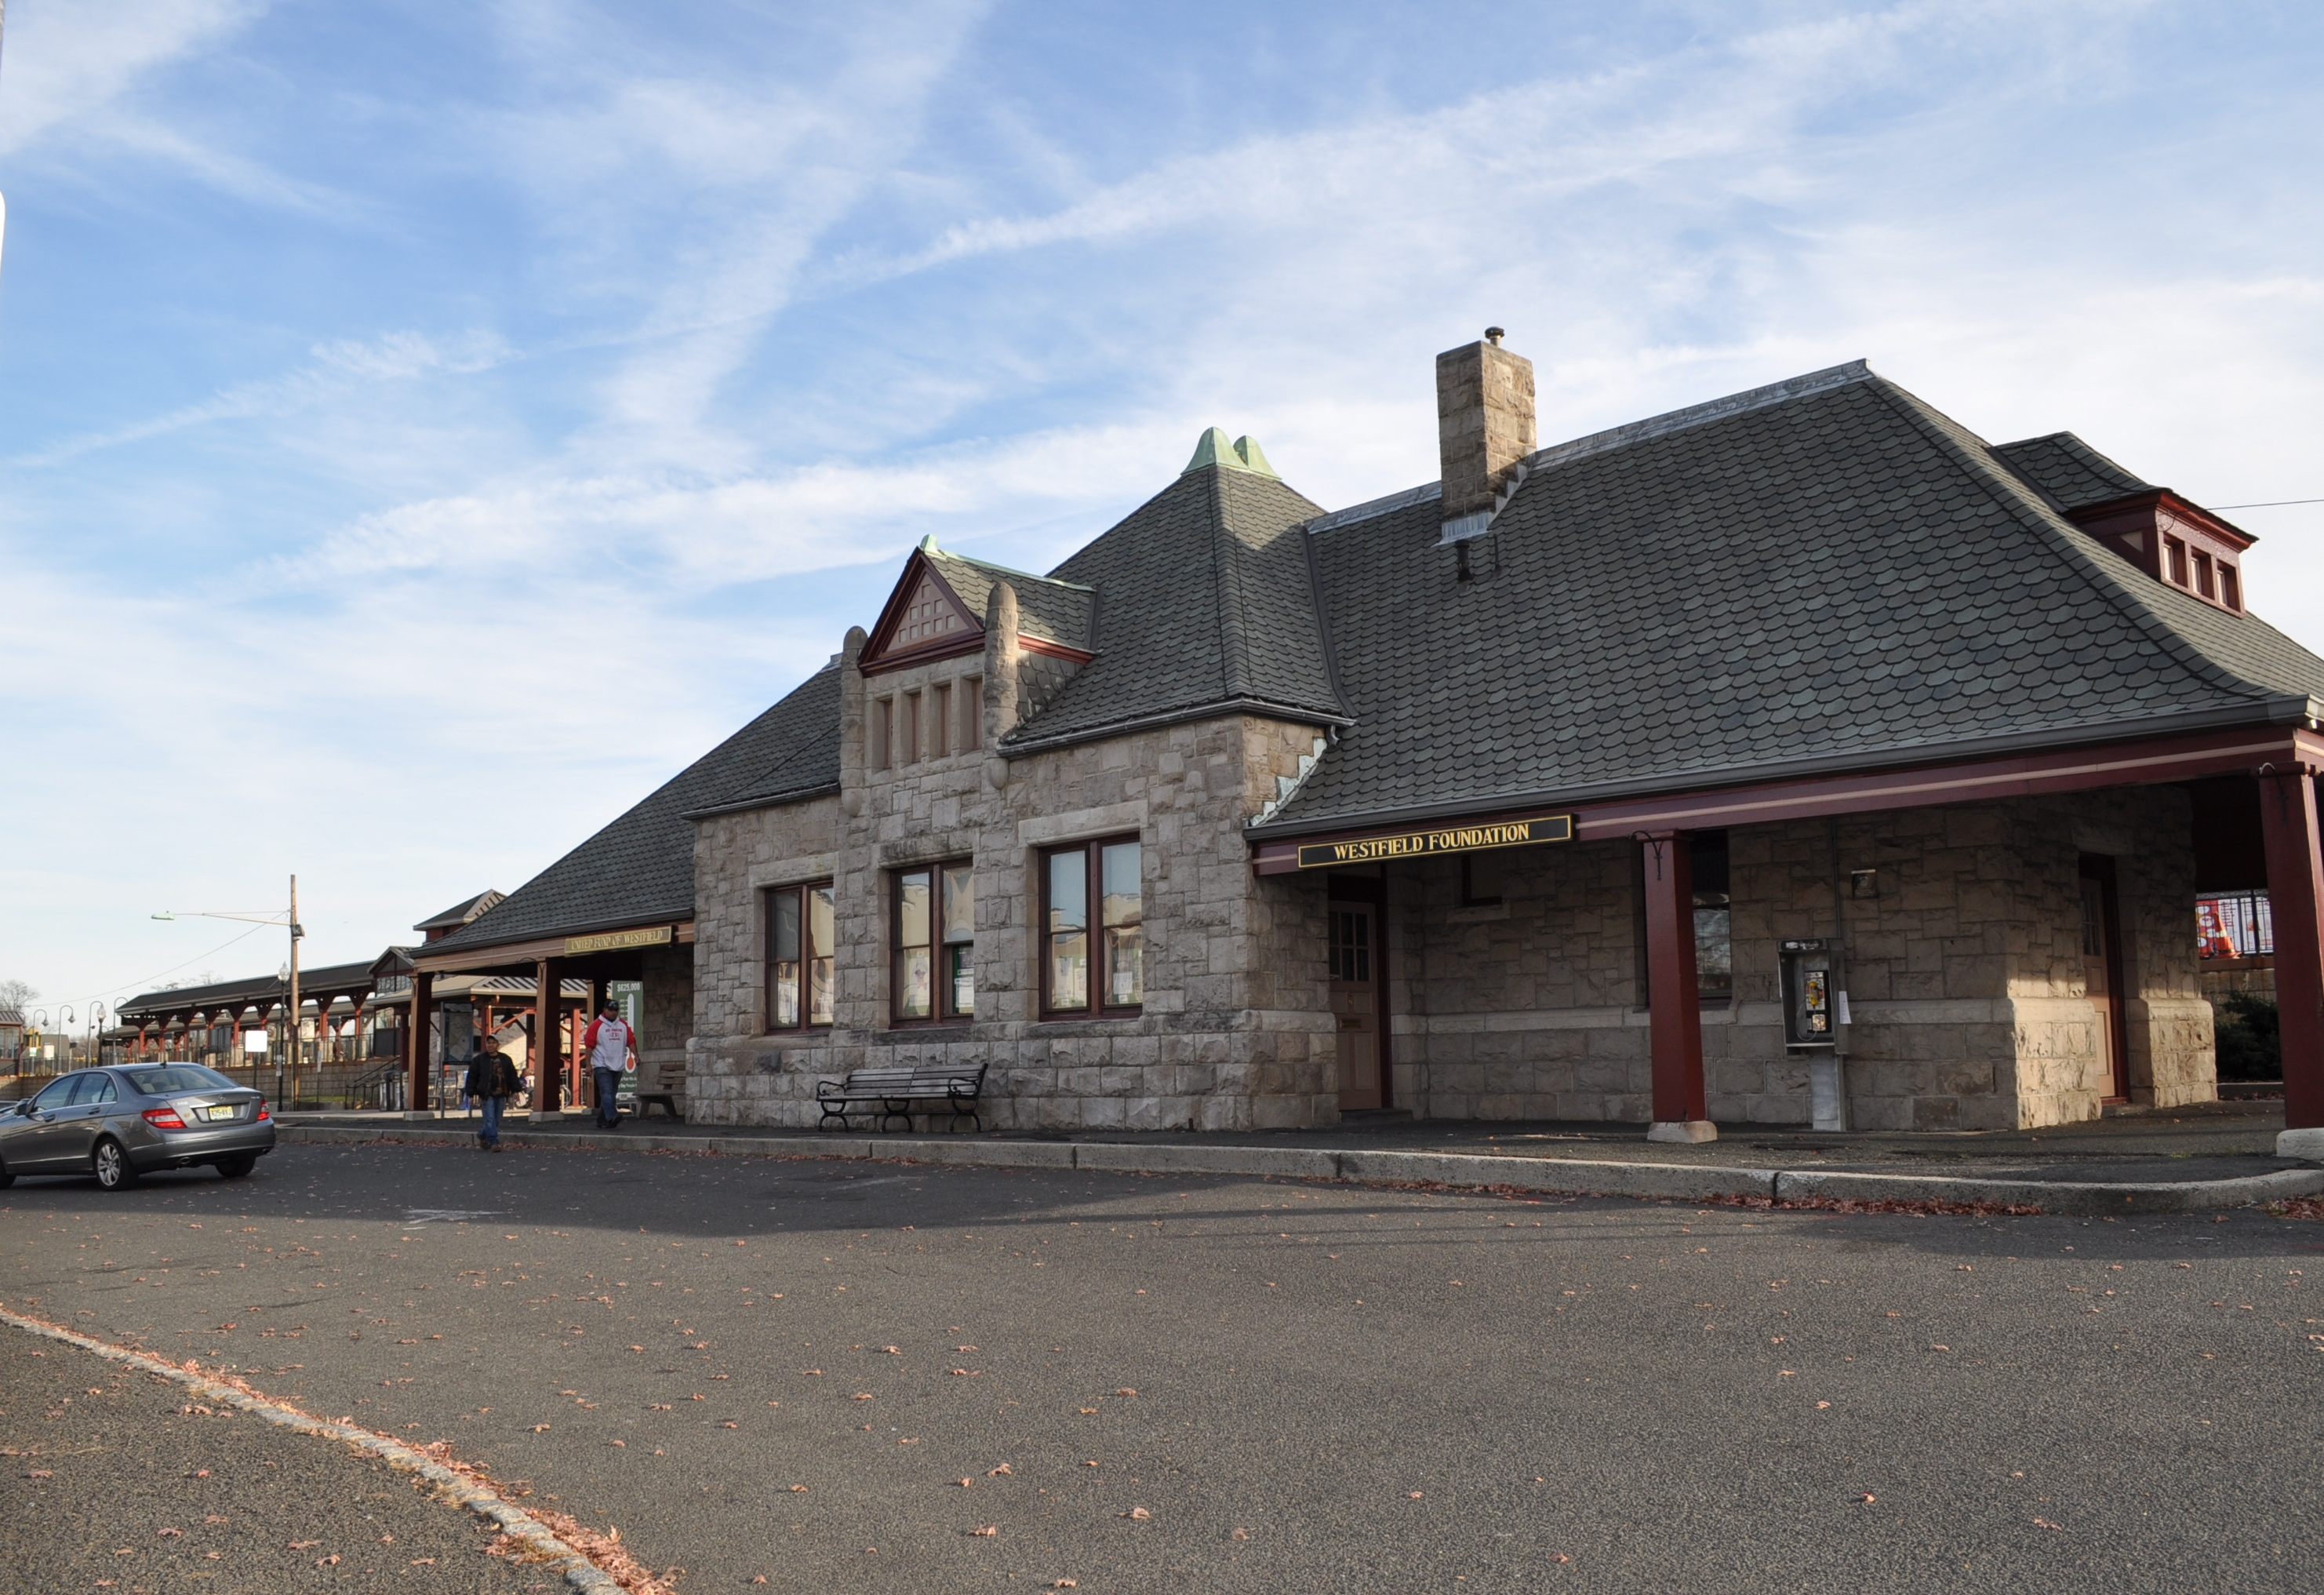 091f42608c9ca0dd95d5_d24fc75e064b3526161f_train_station.JPG